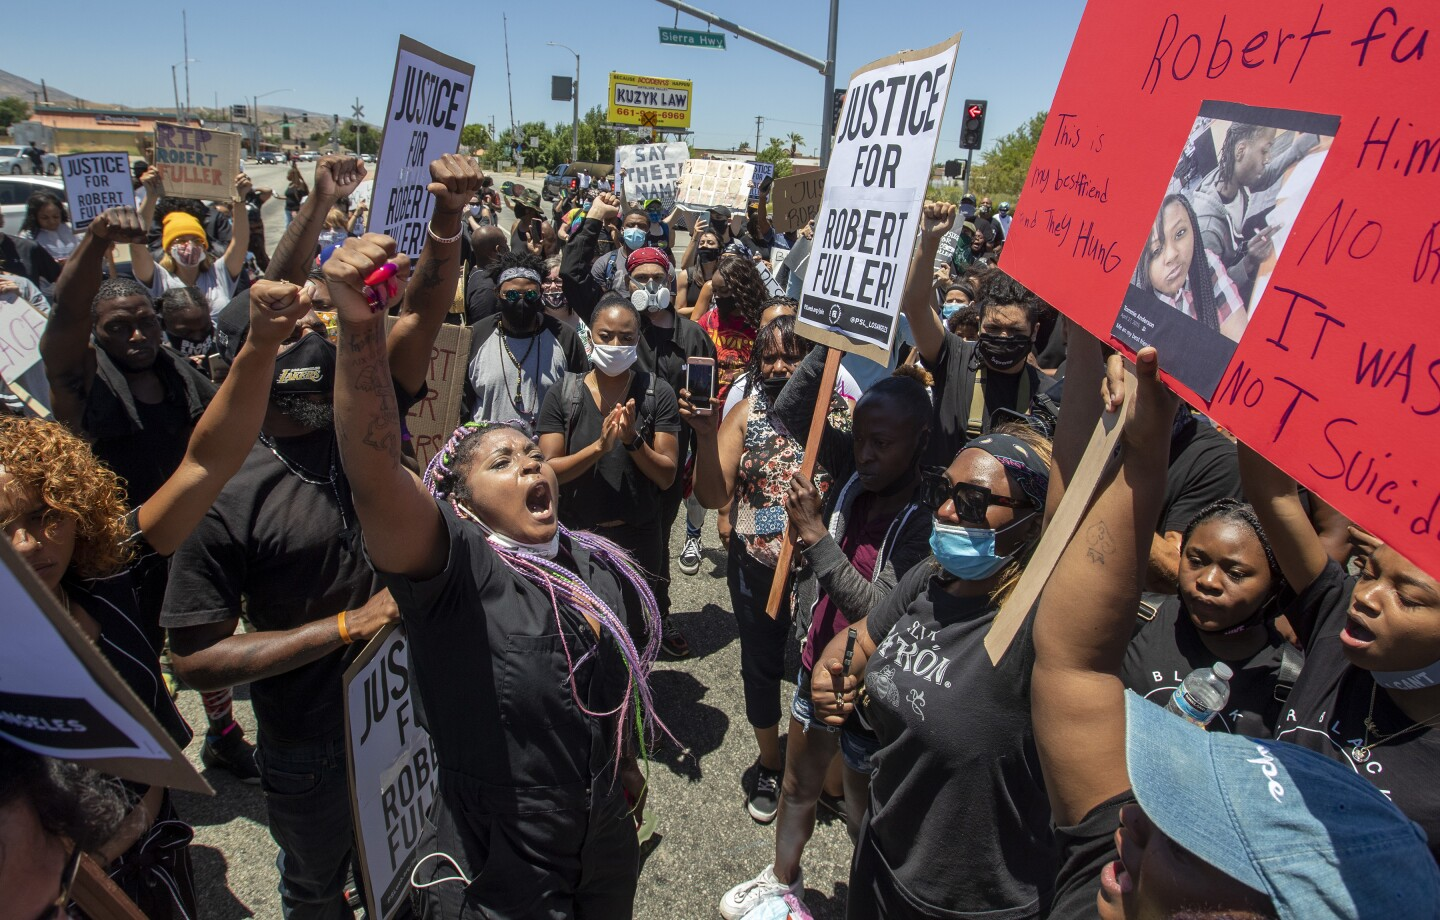 PALMDALE, CA - JUNE 13: Paris Draper, left, leads hundreds of protesters in chants for justice after the death of a young Black man, Robert Fuller, during protest march in Palmdale on Saturday, June 13, 2020 in Palmdale, CA. (Brian van der Brug / Los Angeles Times)